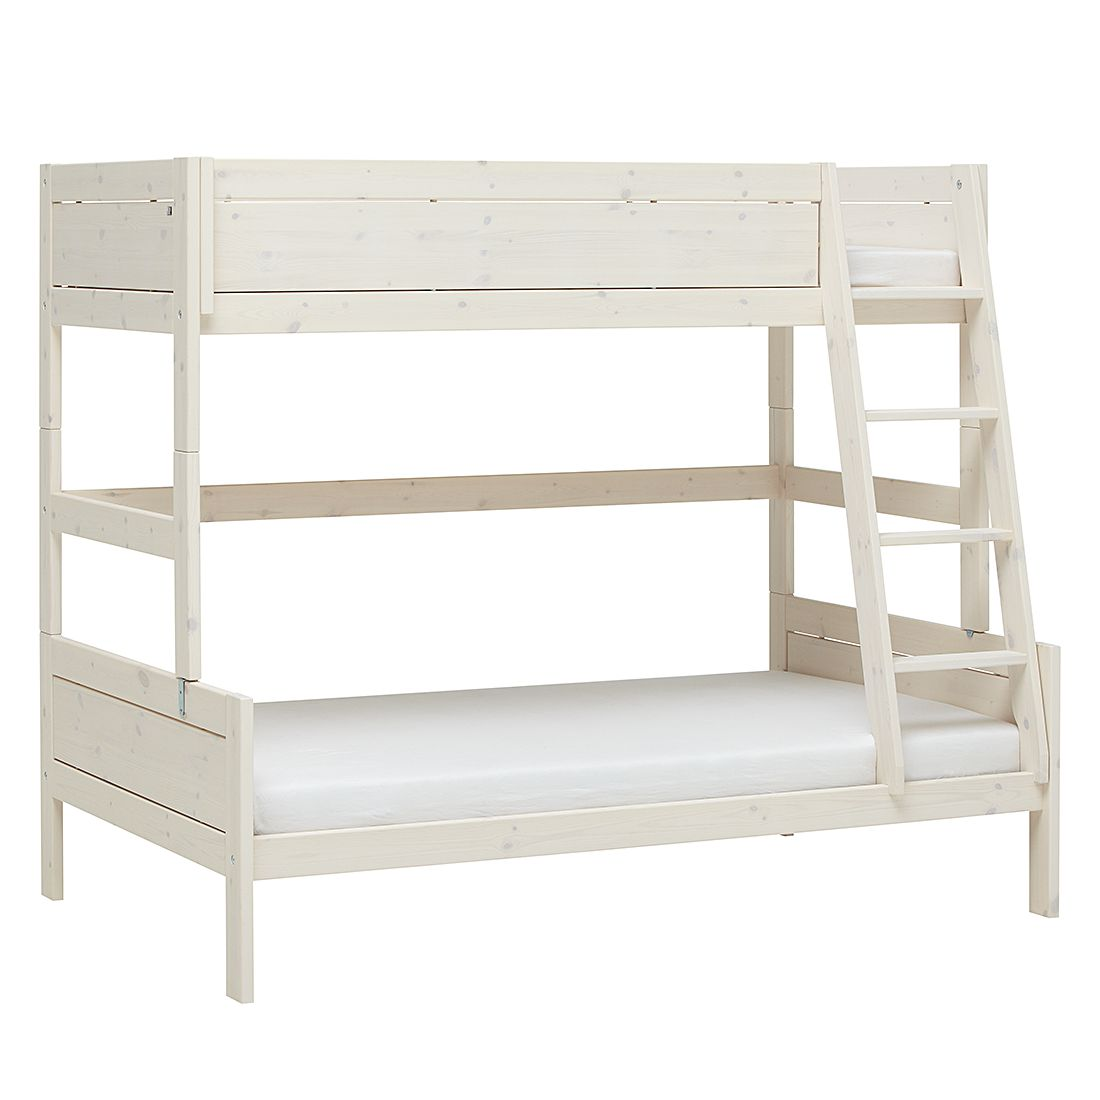 Etagenbett Lifetime Original - Kiefer massiv - Whitewash - Liegefläche: 90/120 x 200 cm - mit Rollrost, Lifetime Kidsrooms